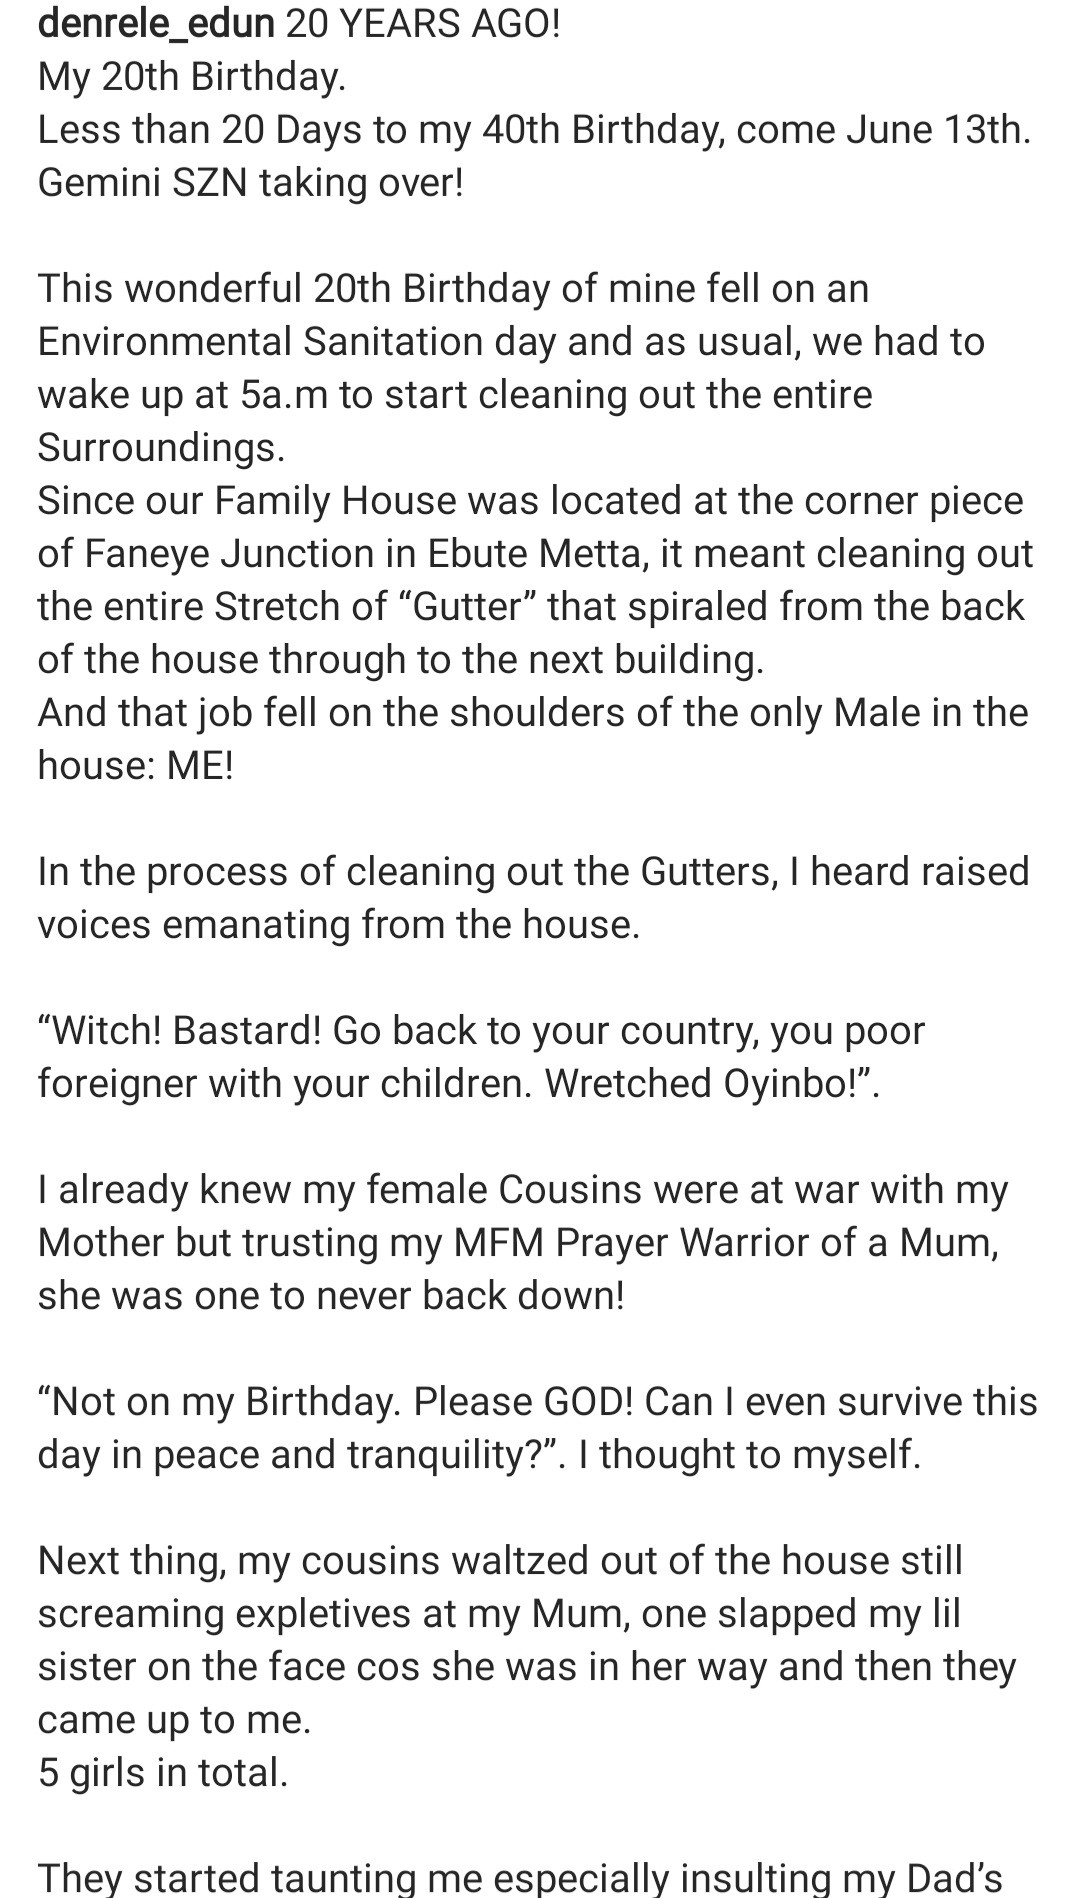 Denrele Edun recalls being assaulted by his female cousins on his 20th birthday